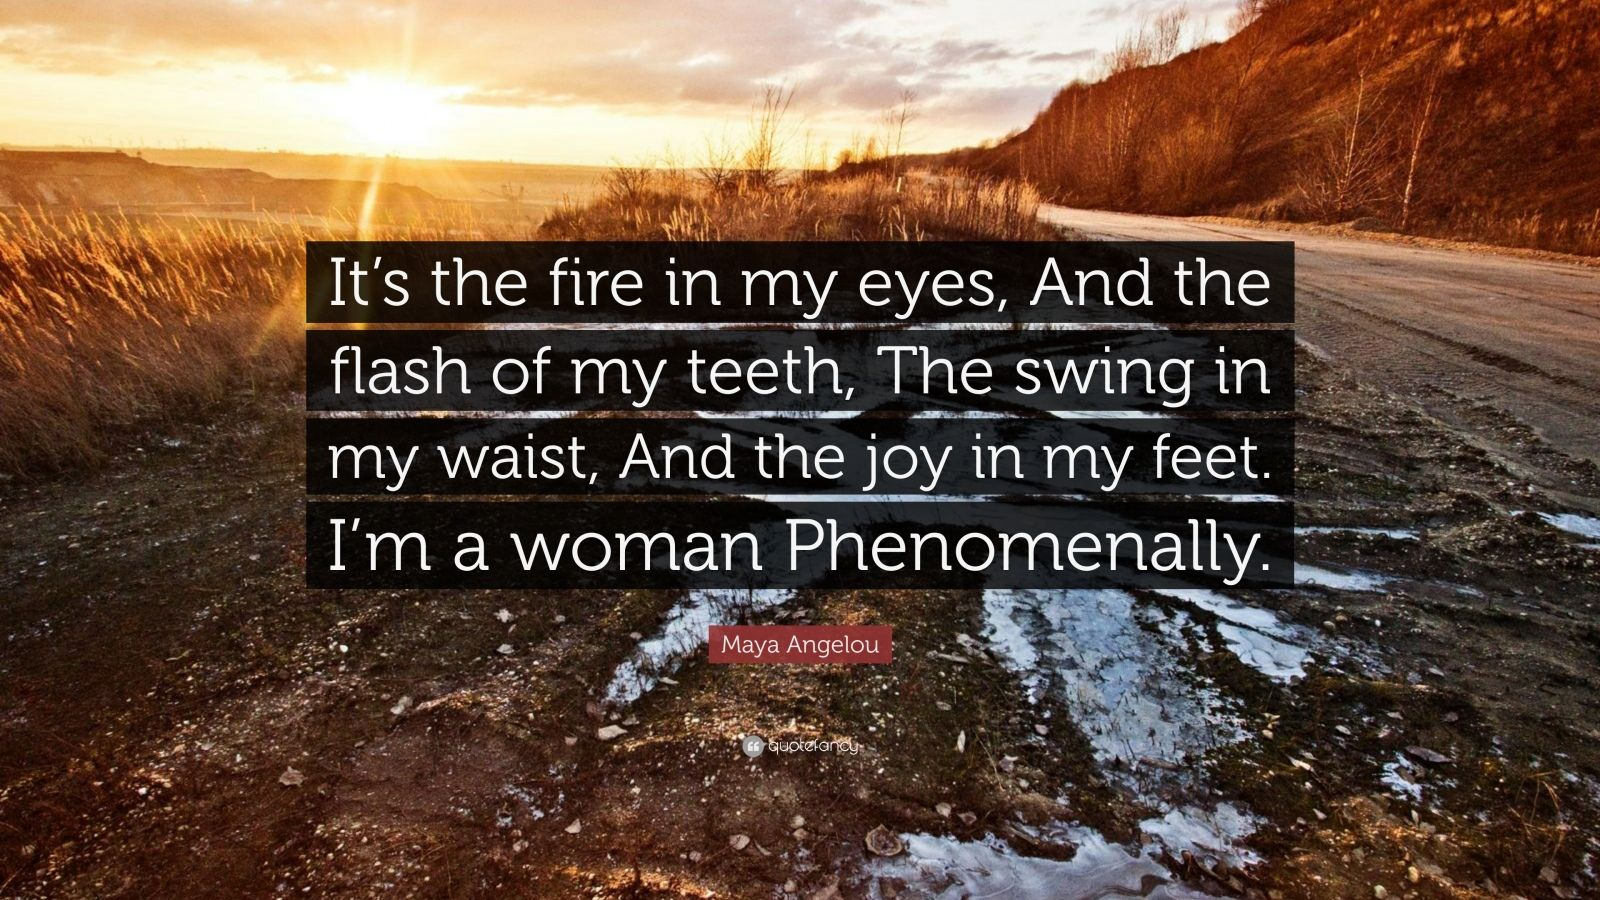 """Maya Angelou Quote: """"It's the fire in my eyes, And the flash of my teeth, The swing in my waist, And the joy in my feet. I'm a woman Phenomenally."""""""